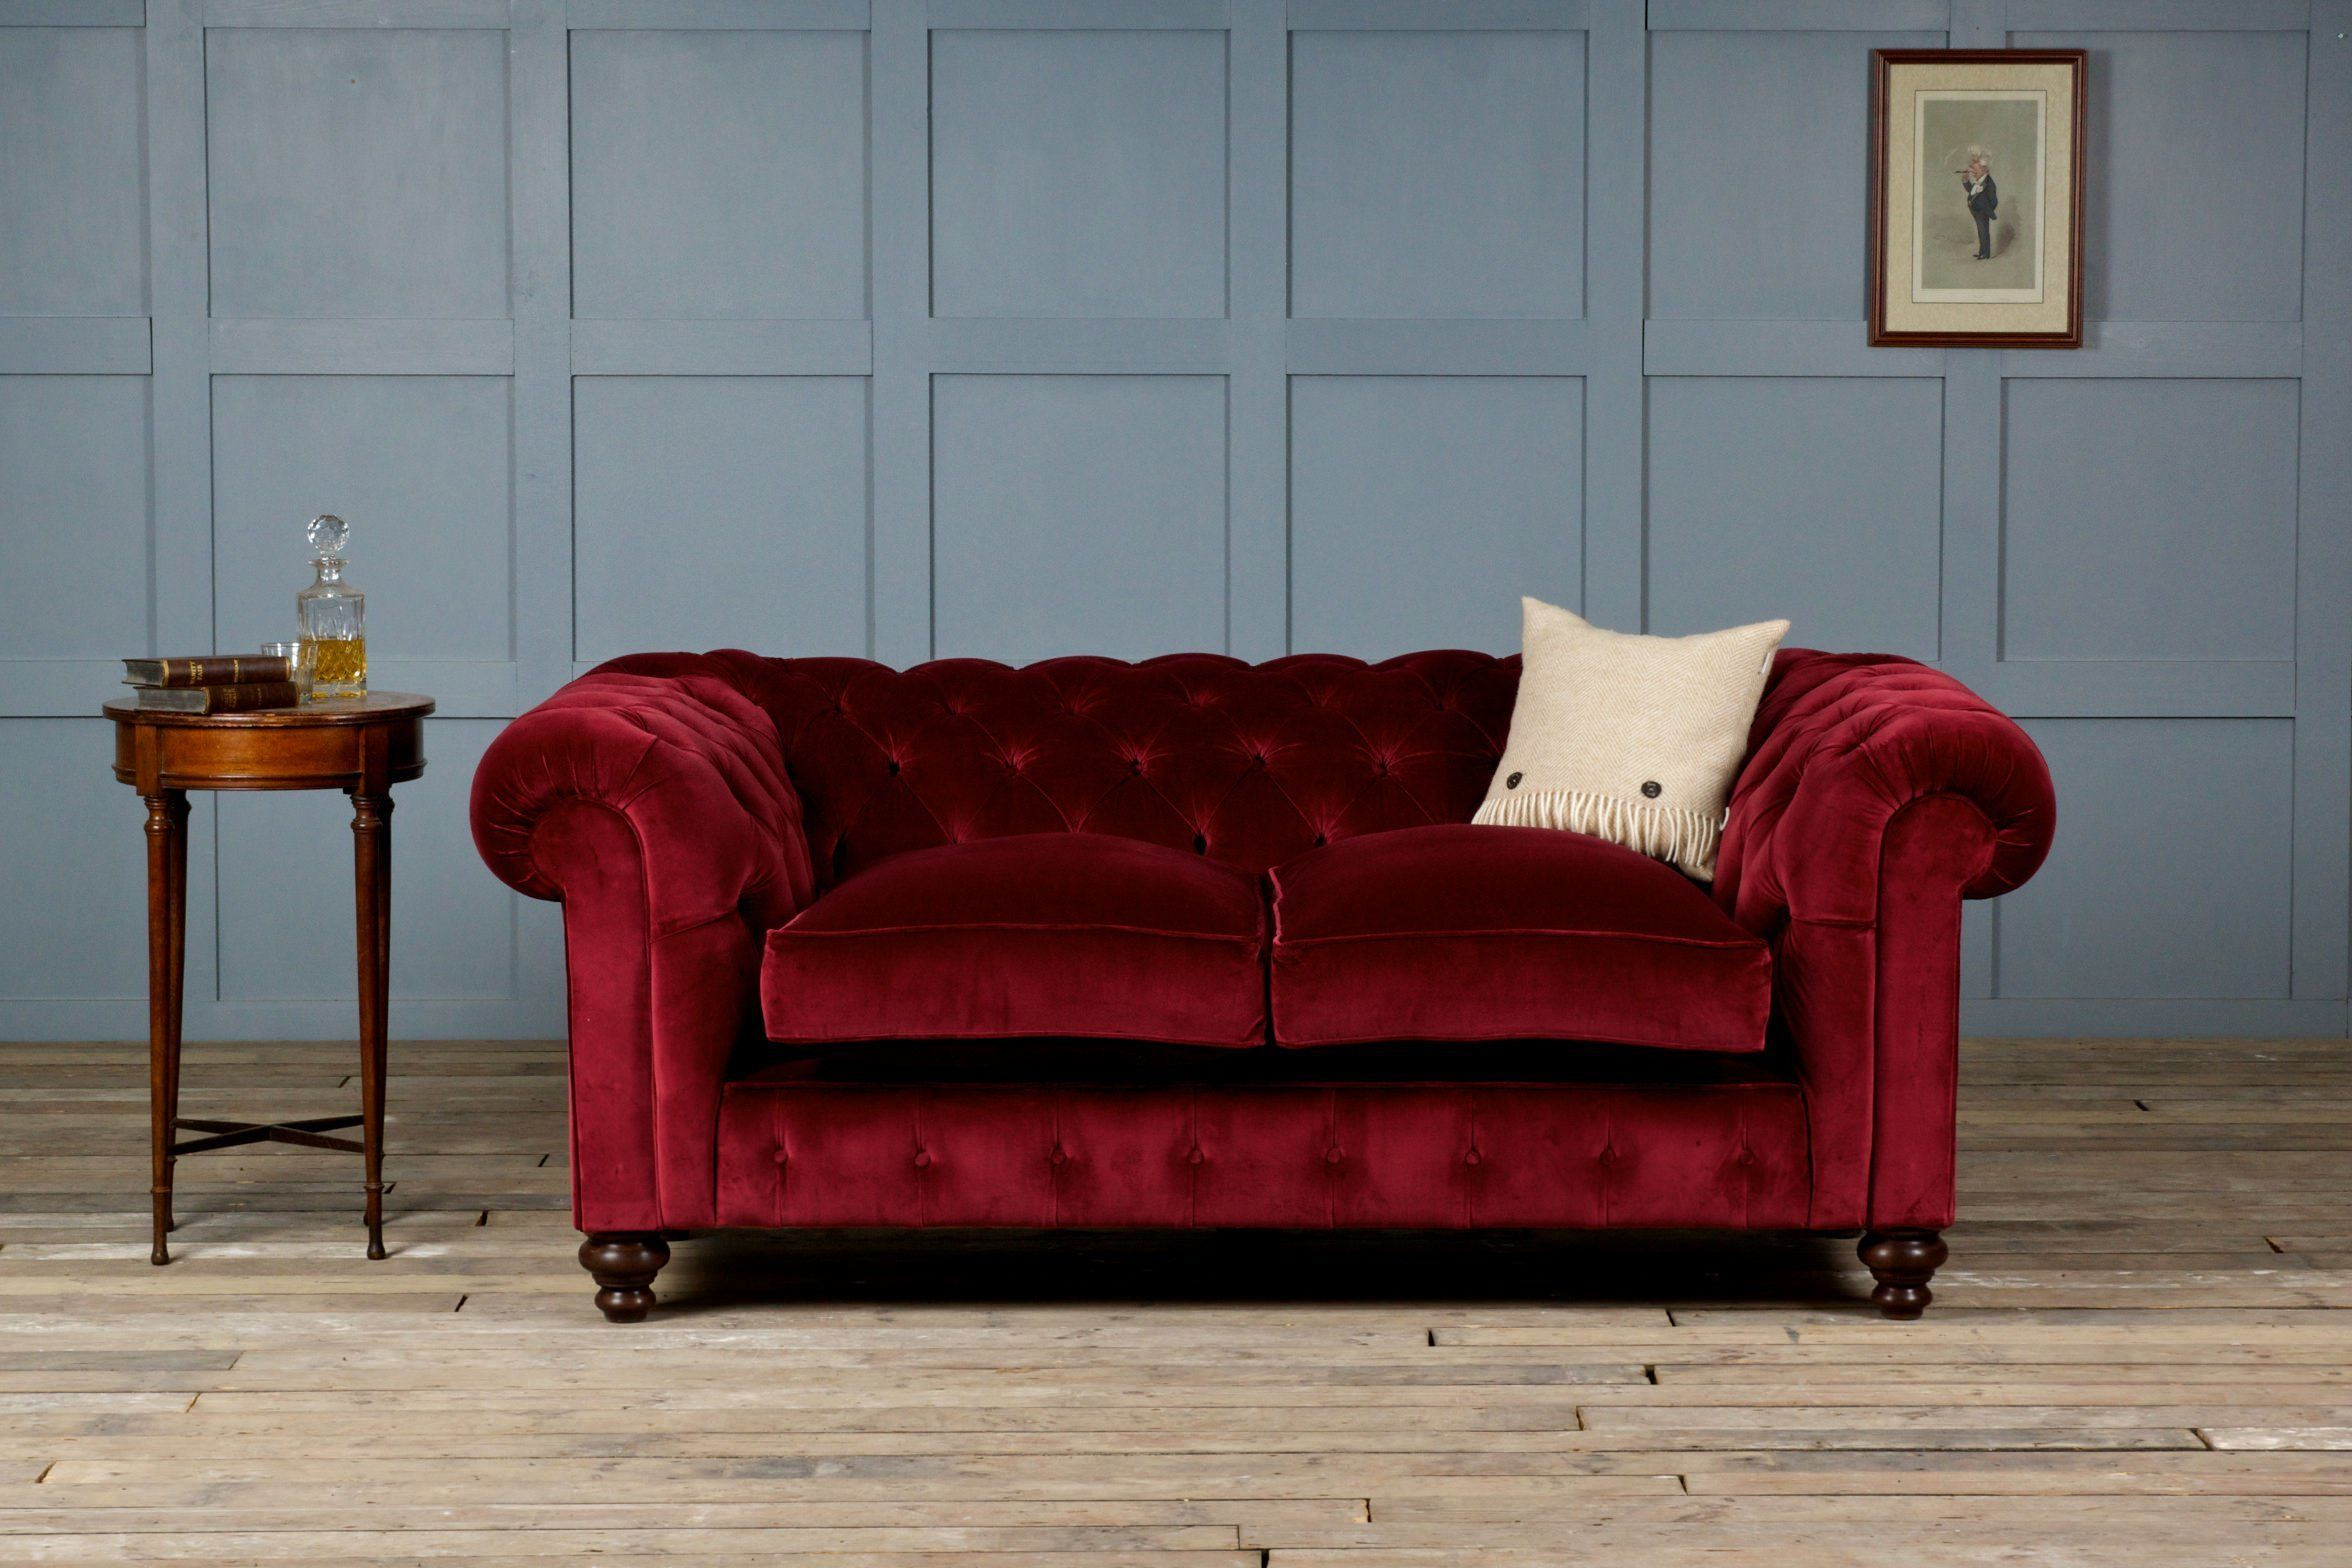 Pin by Sofacouchs on Apartment Sofa in 2019 | Velvet chesterfield ...